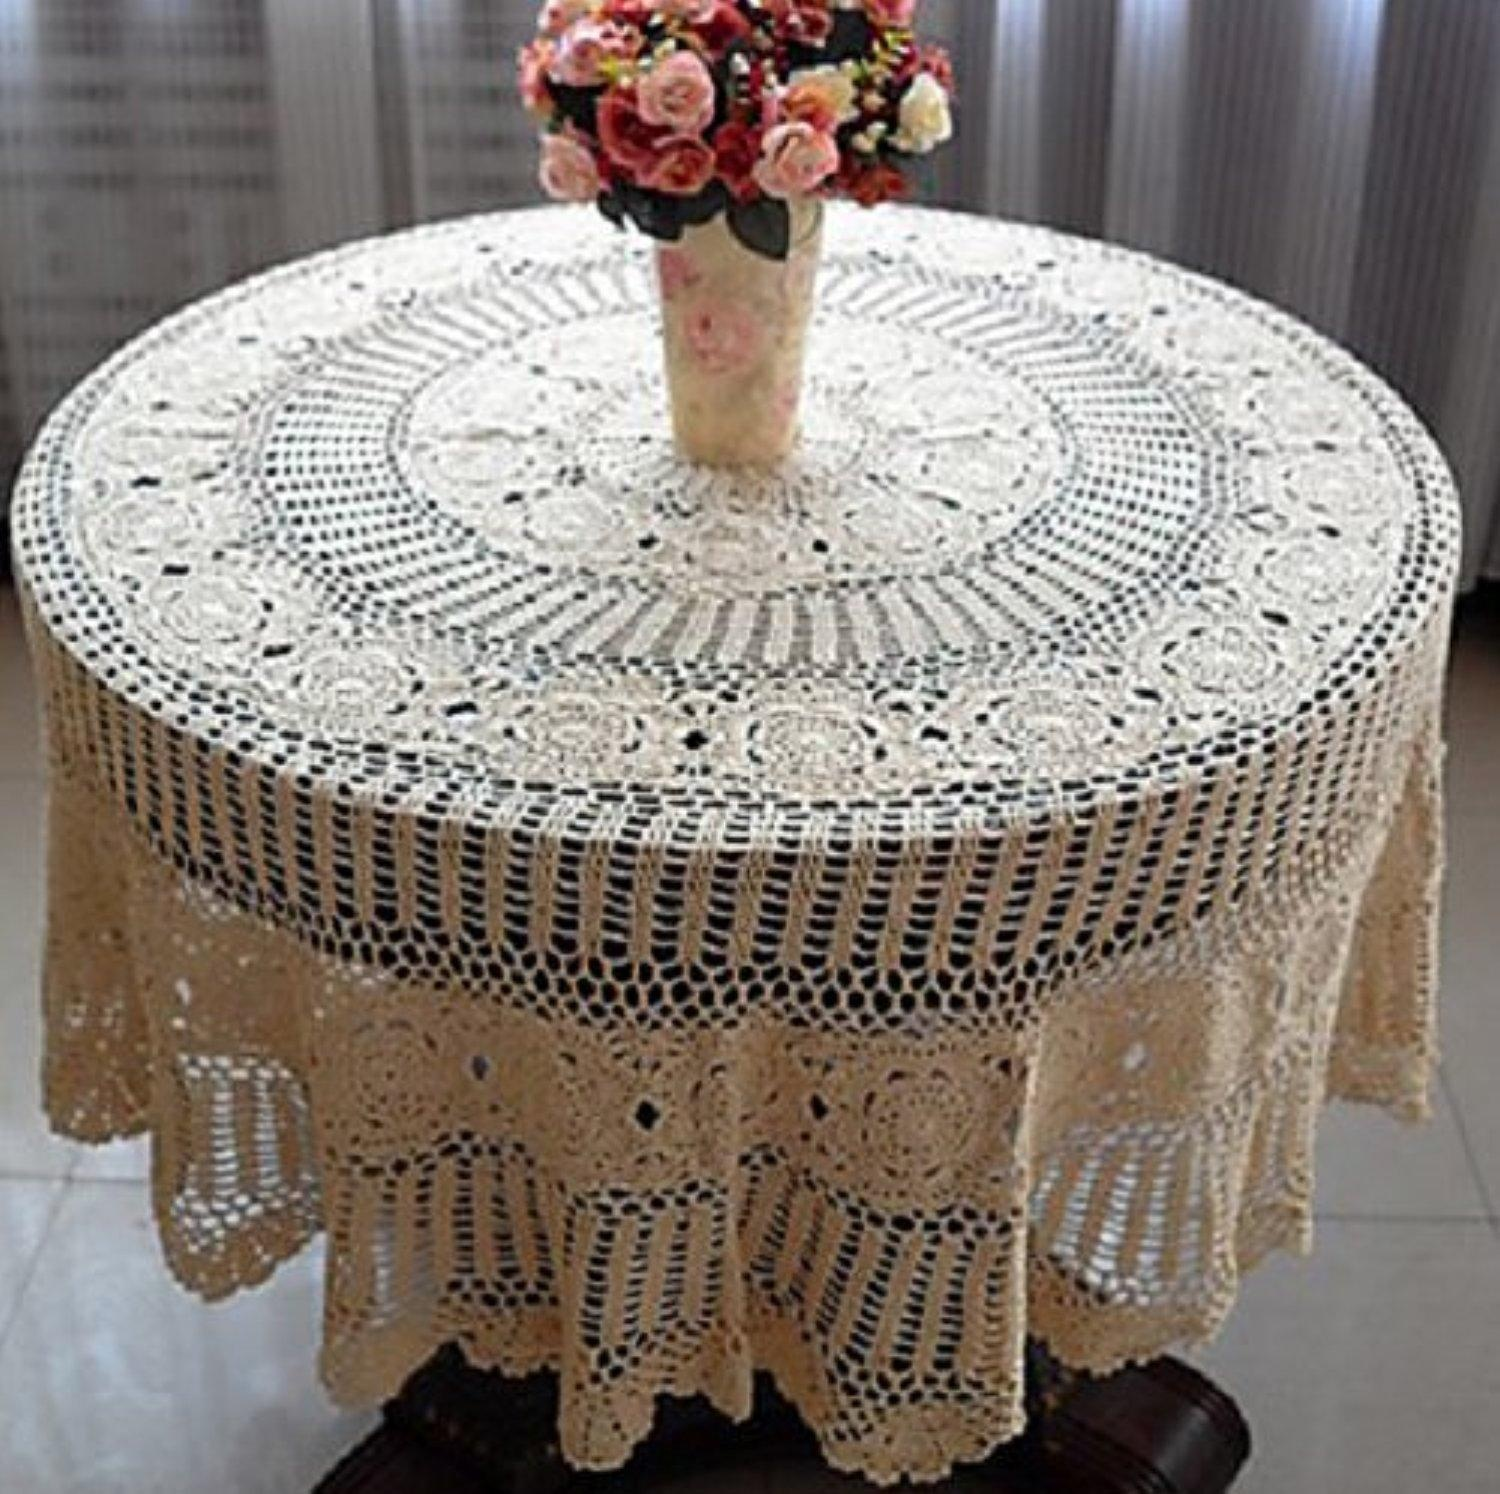 Lace Tablecloths | Cheap Lace Tablecloth | Disposable Lace Tablecloths